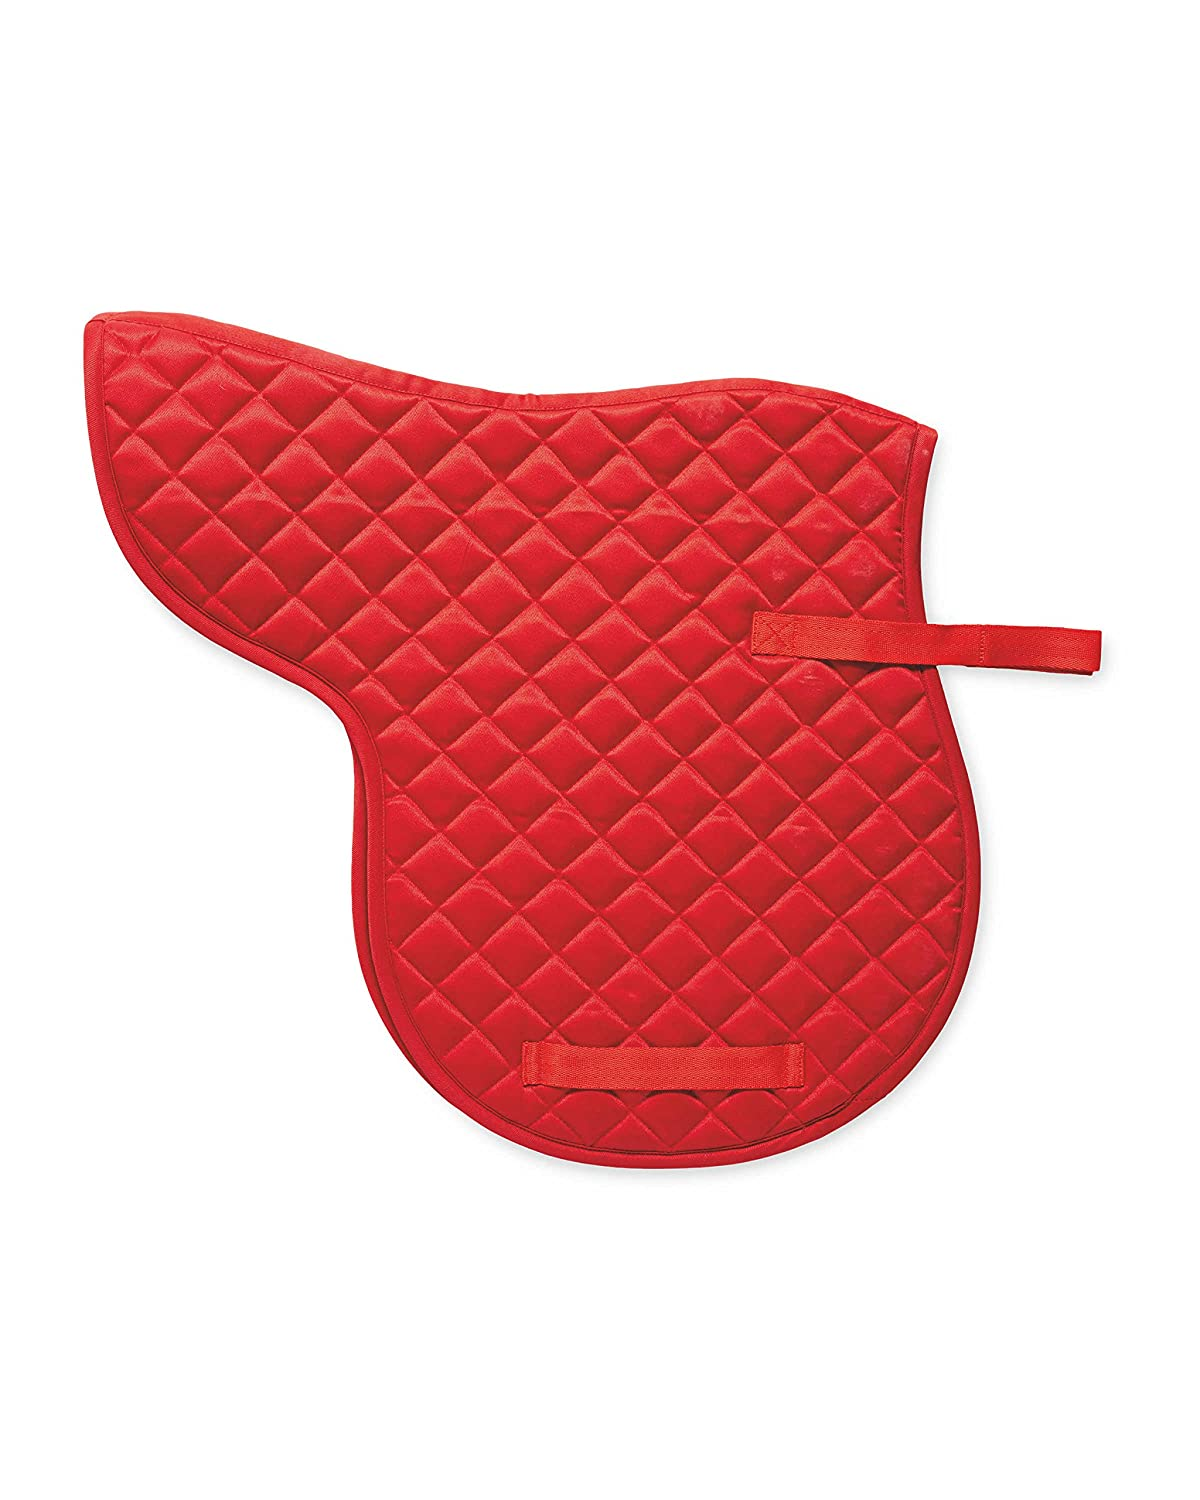 100% Polyester 170GSM Quilted Horse Cob Saddle Numnah - Colour Red ( Equestrian Horse Cob Saddle Pads ) Crane